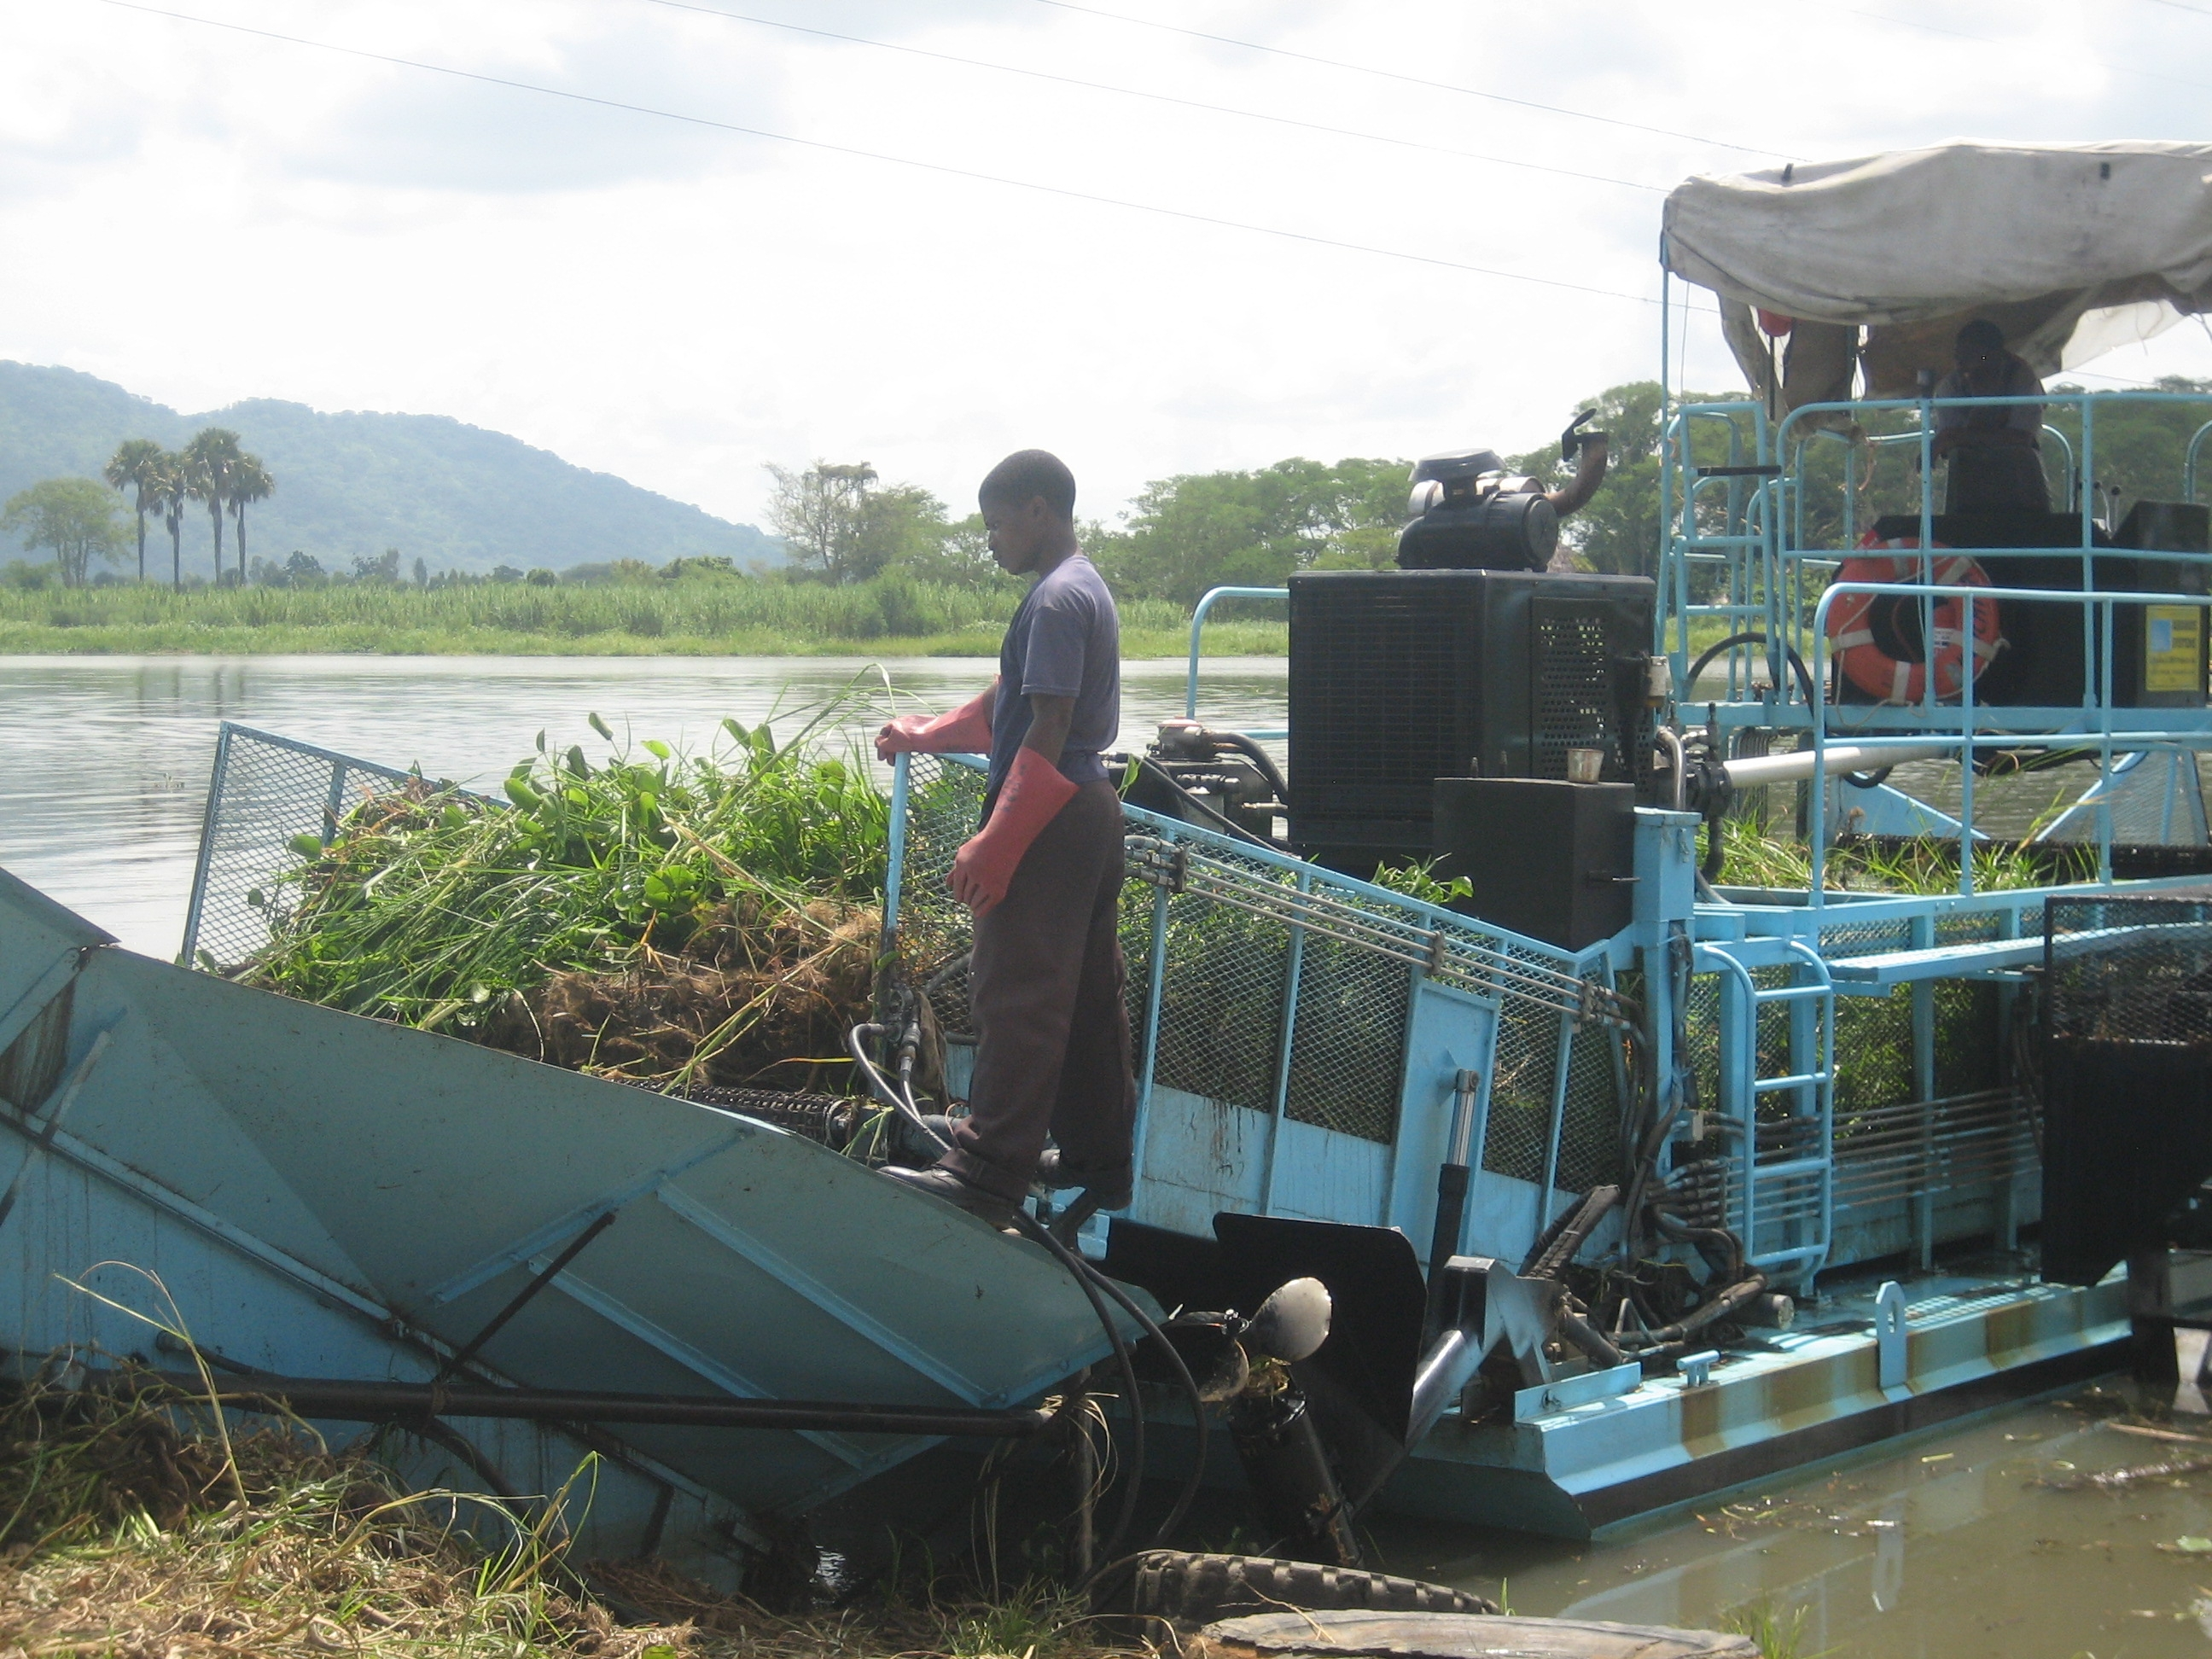 A two-man crew operates a weed harvester on the Shire River in Malawi to keep the hydroelectric plant from being damaged by over growth.